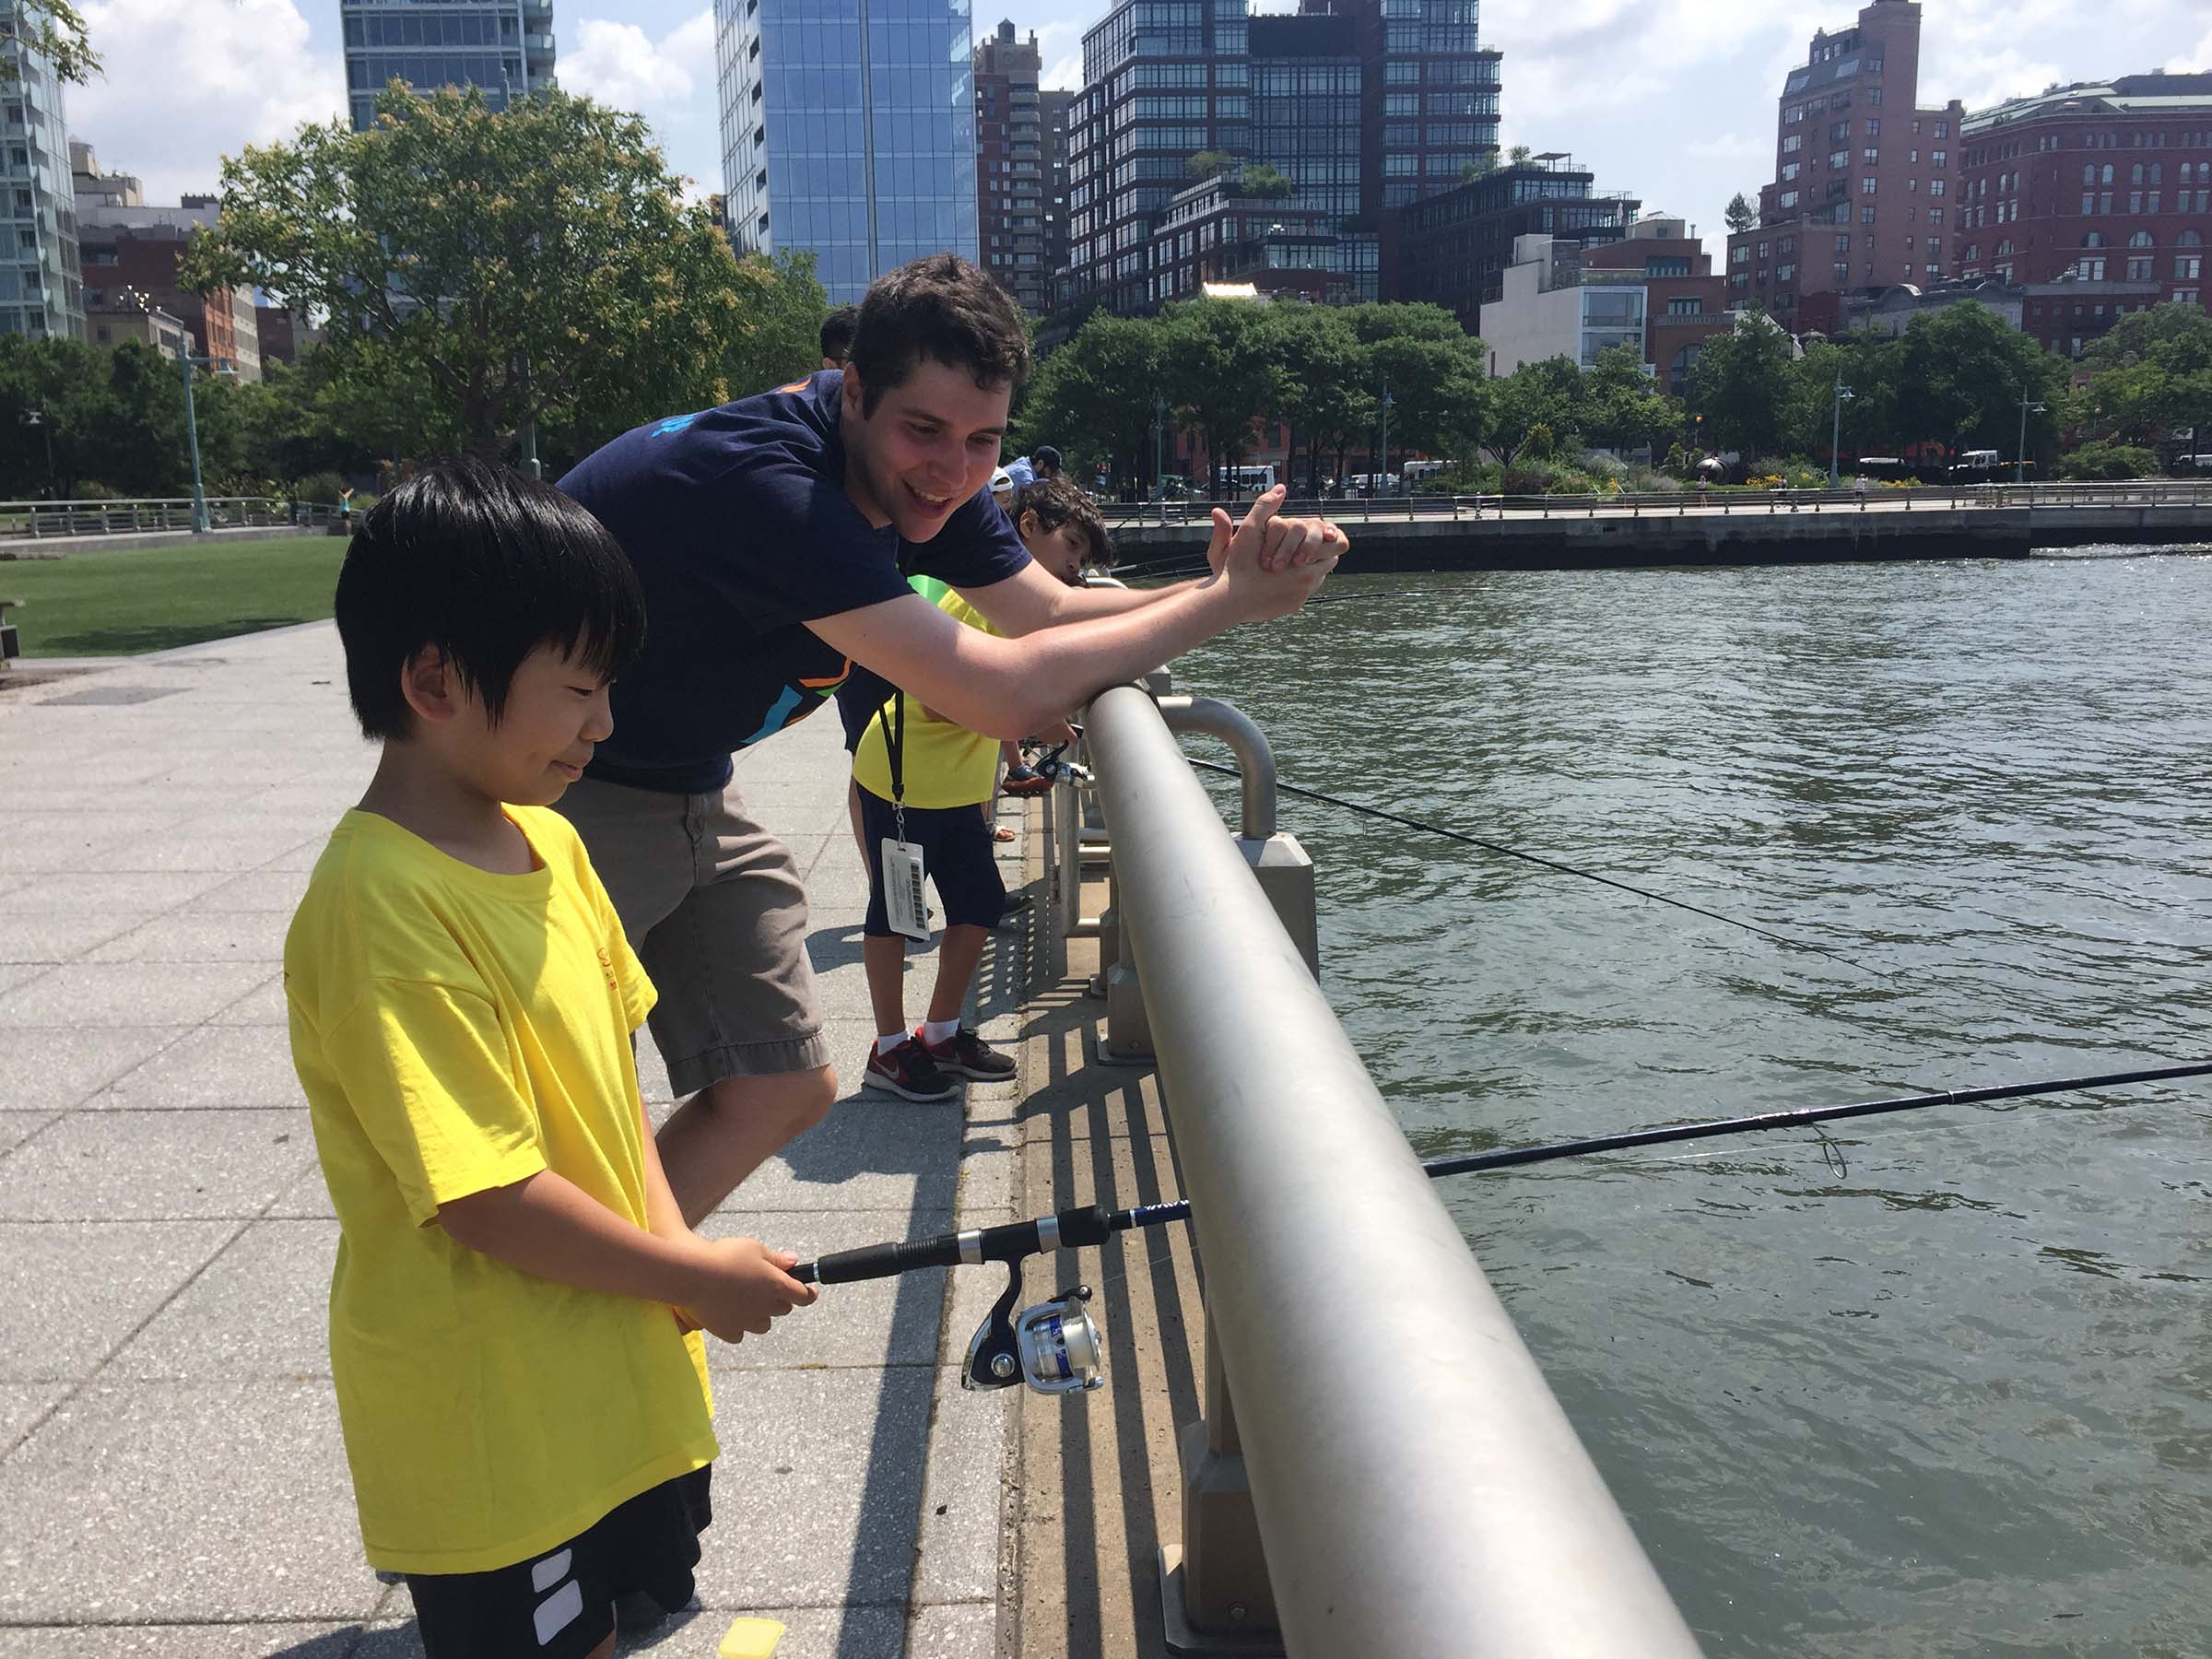 A happy kid fishes in the Hudson River